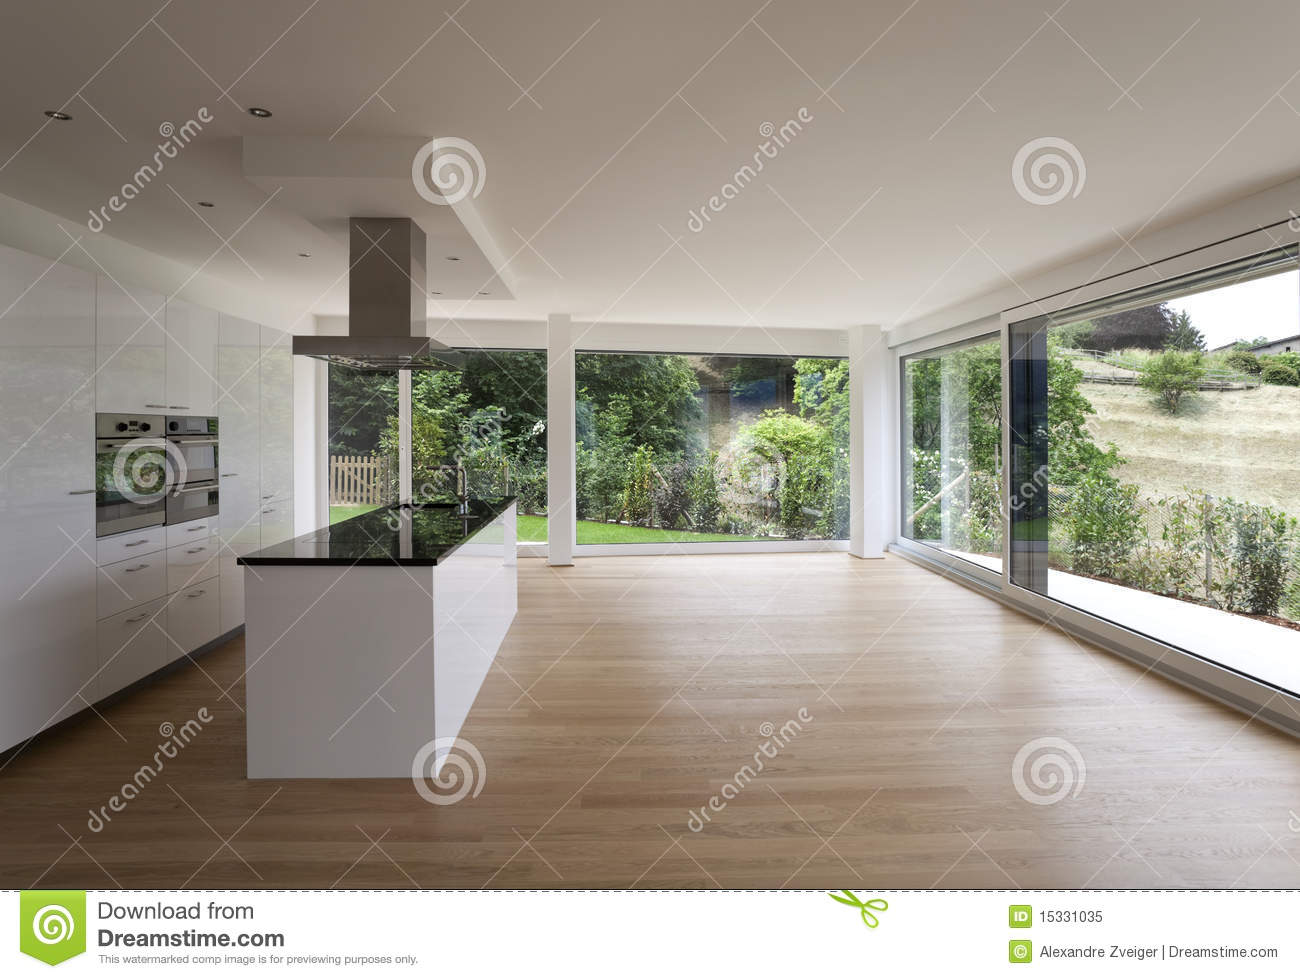 Bel int rieur d 39 une maison moderne photo libre de droits for Interieur de maison moderne